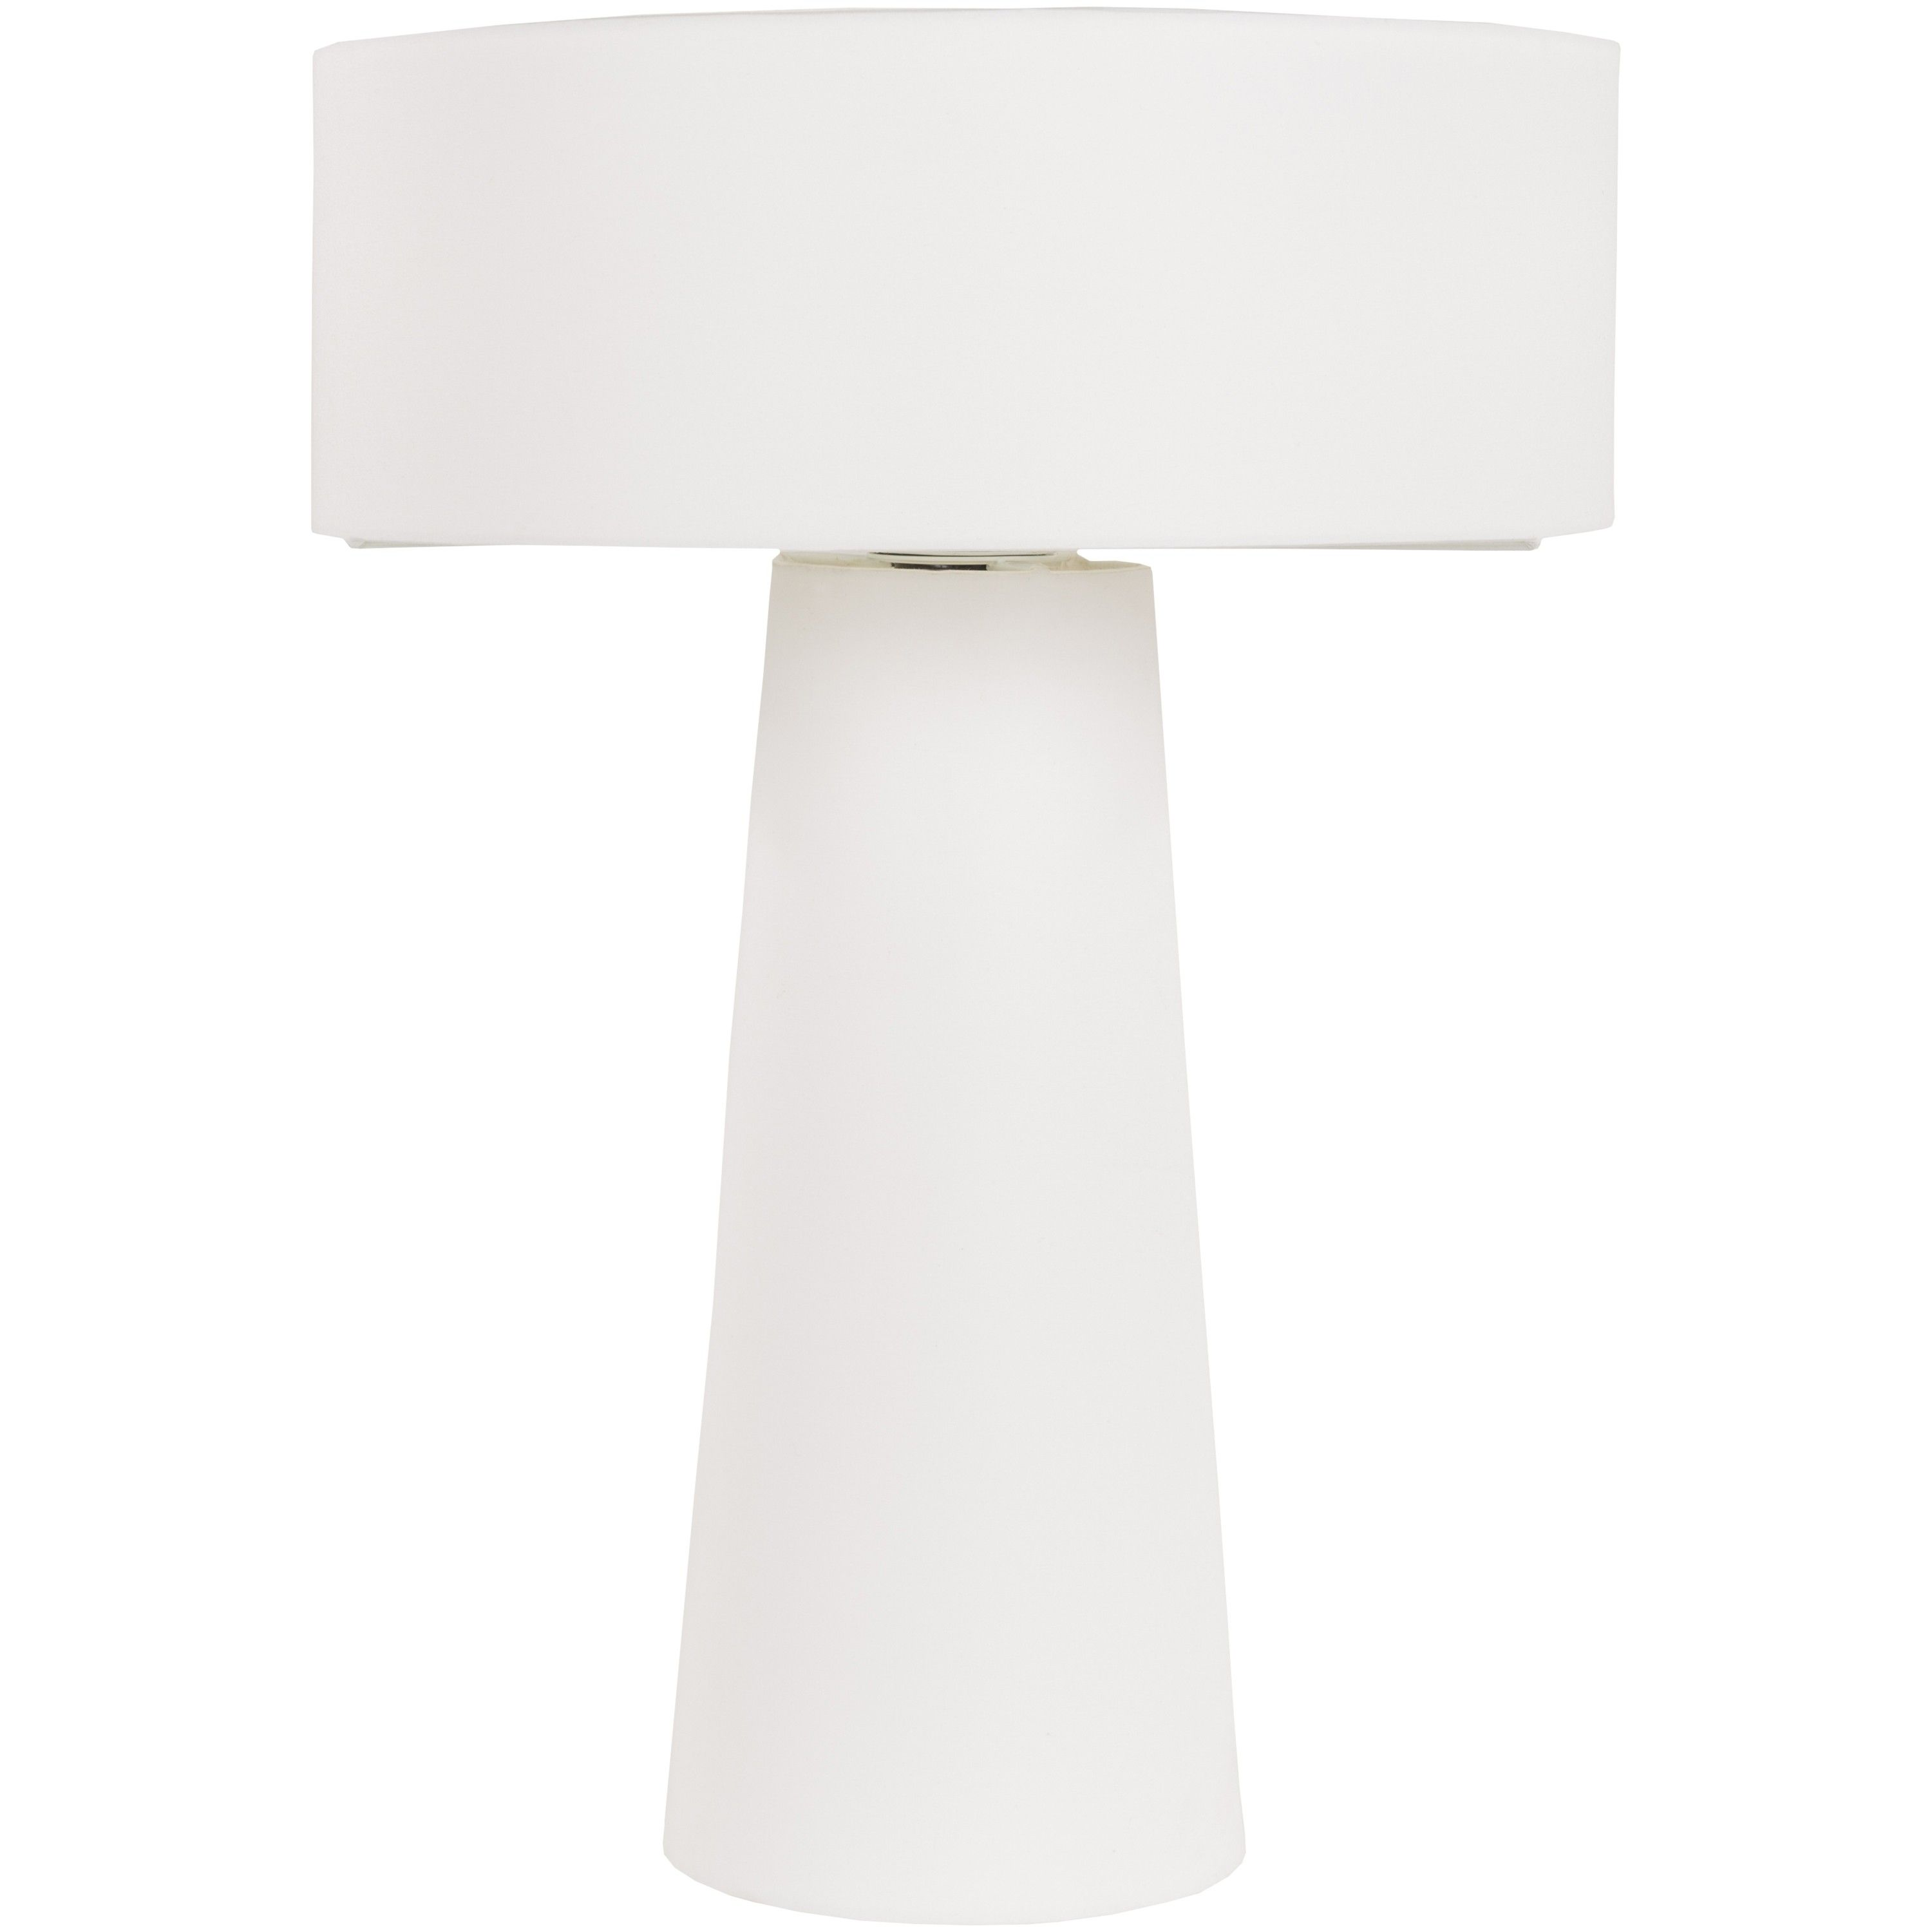 Lulu Georgia Aspel Table Lamp Contemporary Modern and Lights